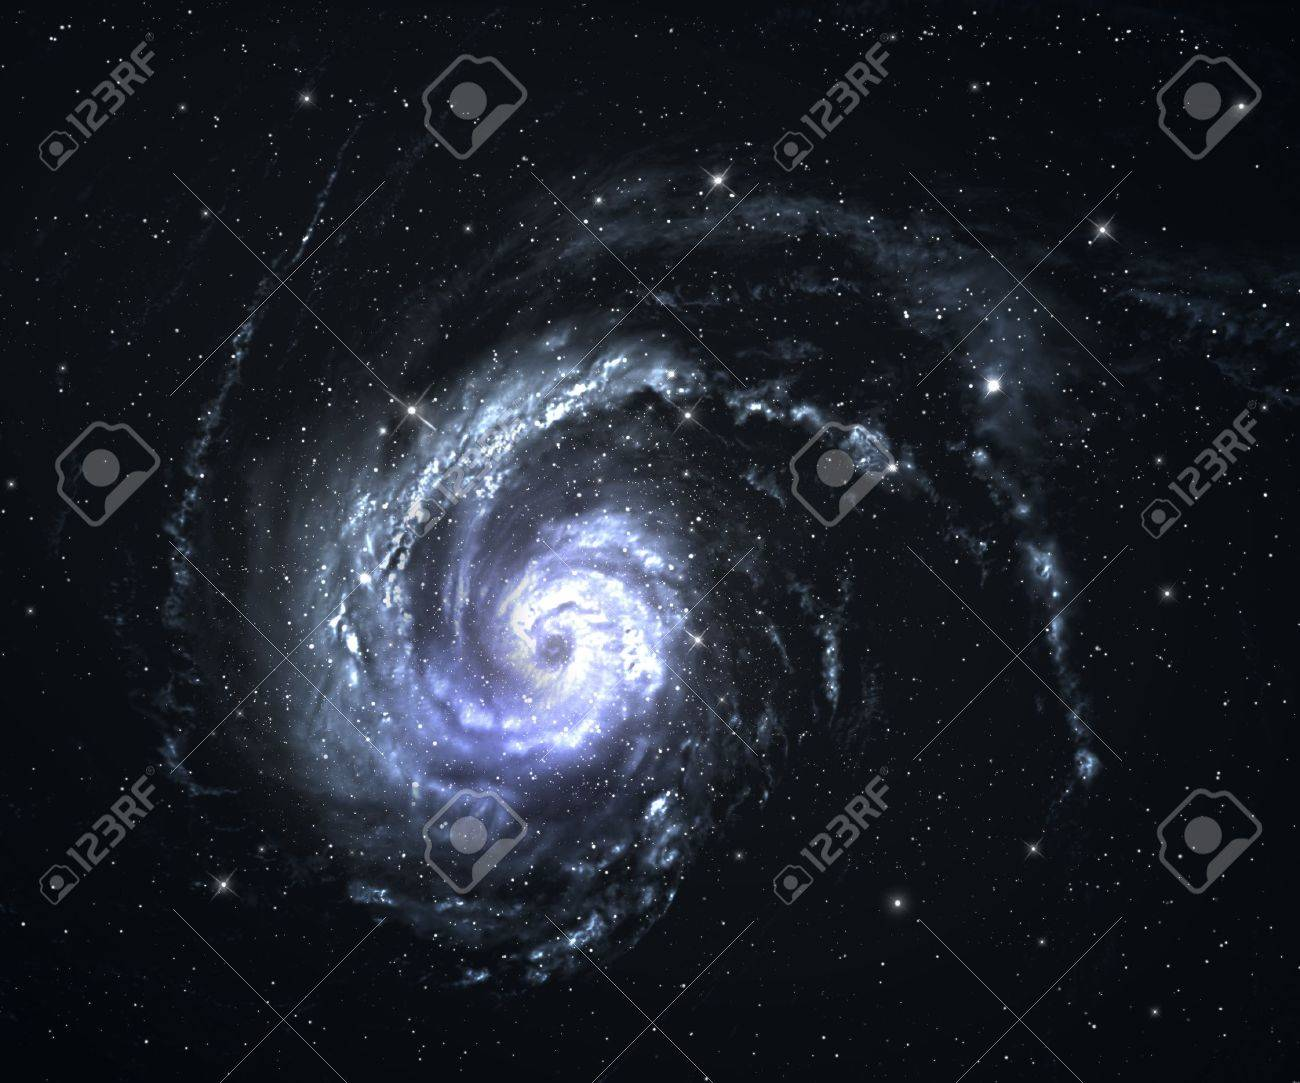 Beautiful spiral galaxy in deep space with starfield background. Stock Photo - 18465070